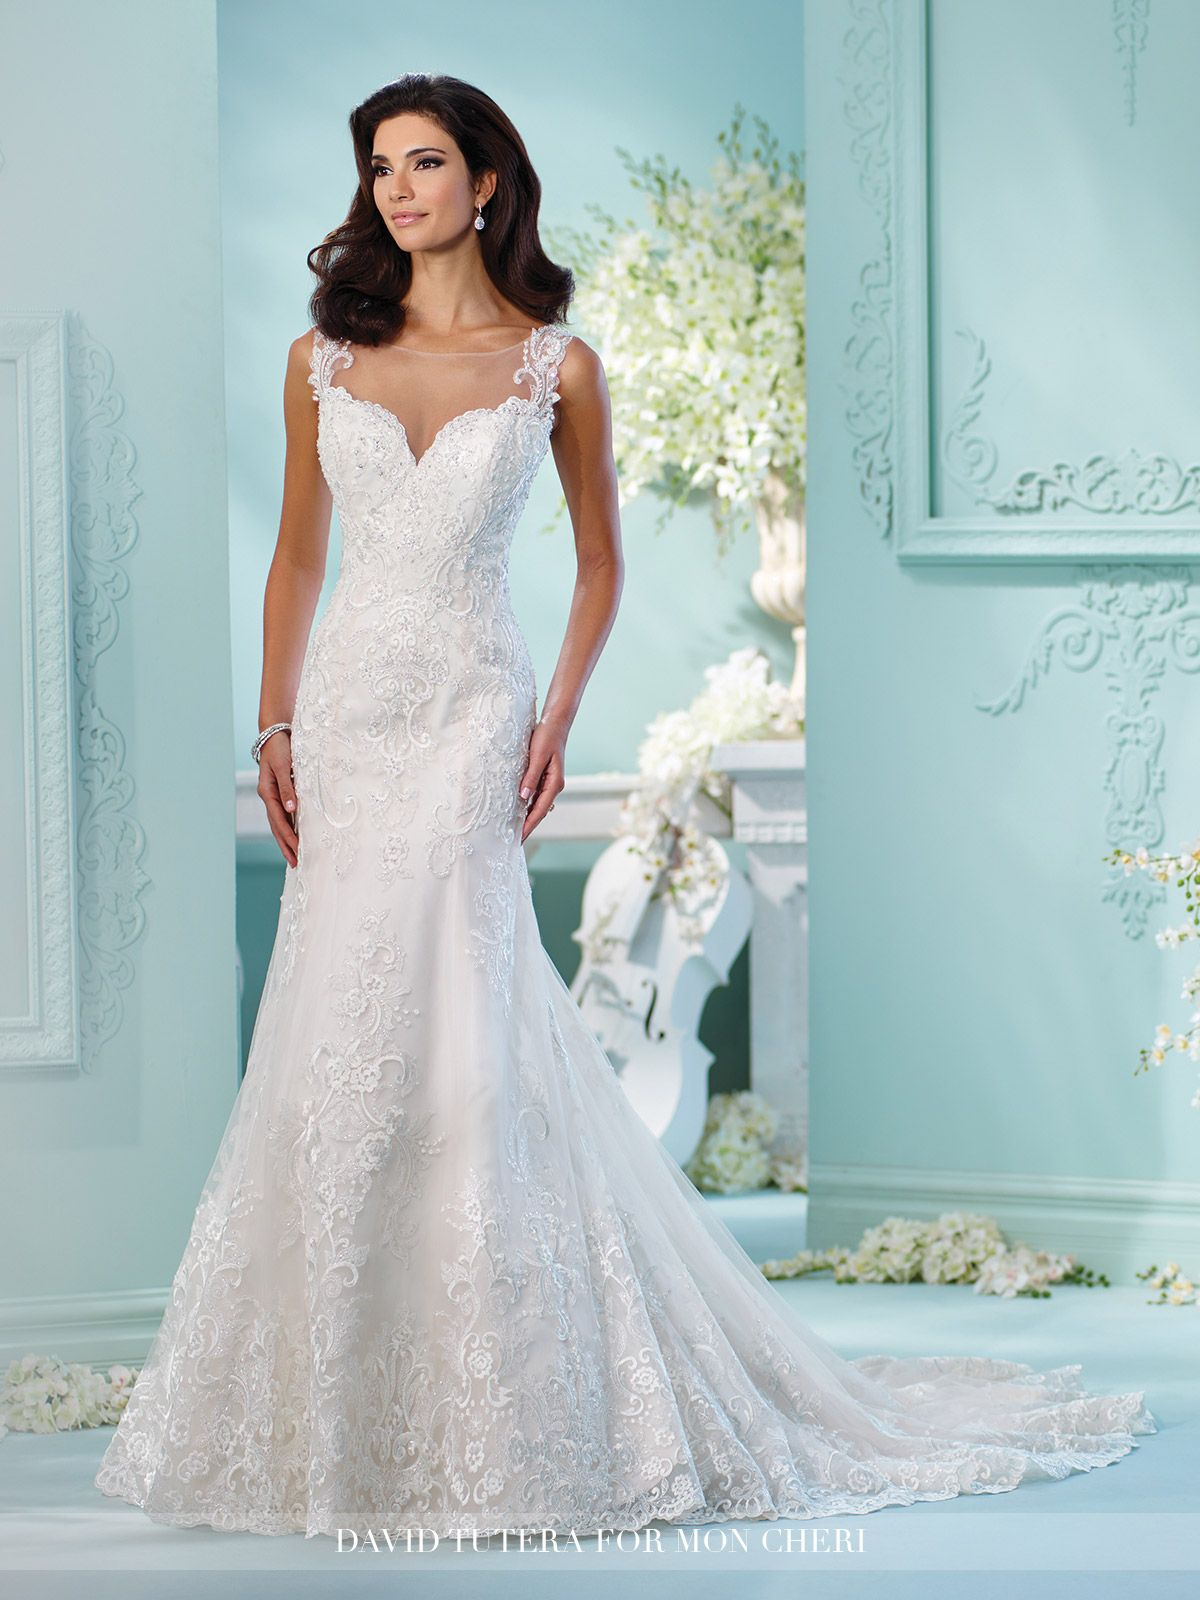 Lace Tulle Over Satin Fit & Flare Wedding Dress- 216256 Linna ...